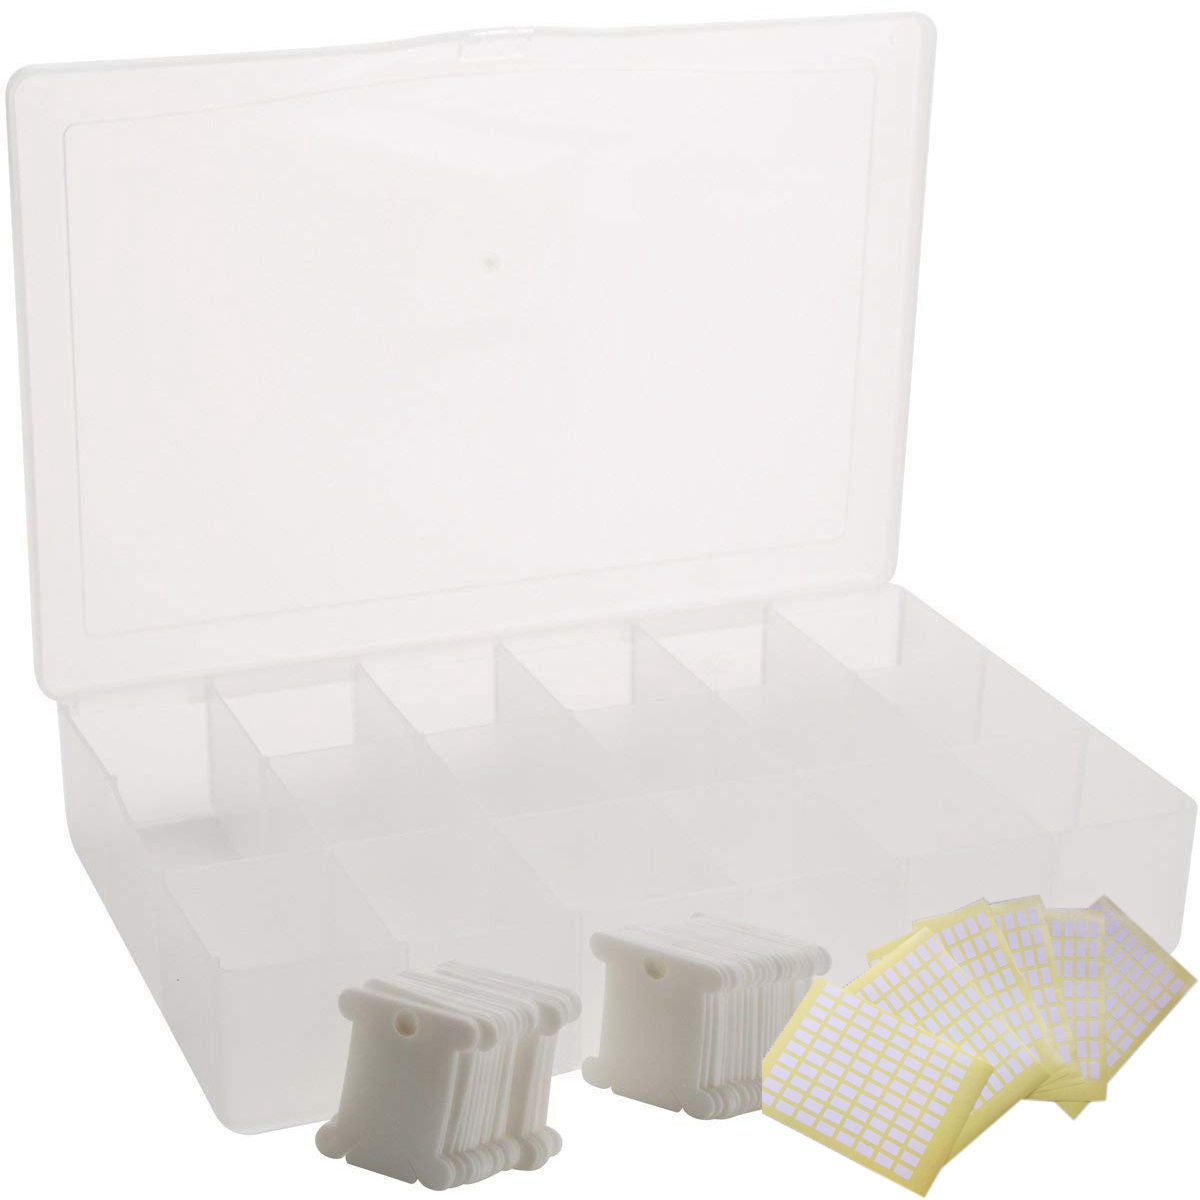 Embroidery Floss Organizer Box - 17 Compartments With 100 Hard Plastic Floss Bobbins And 480 Floss Number Stickers. (Full Set)